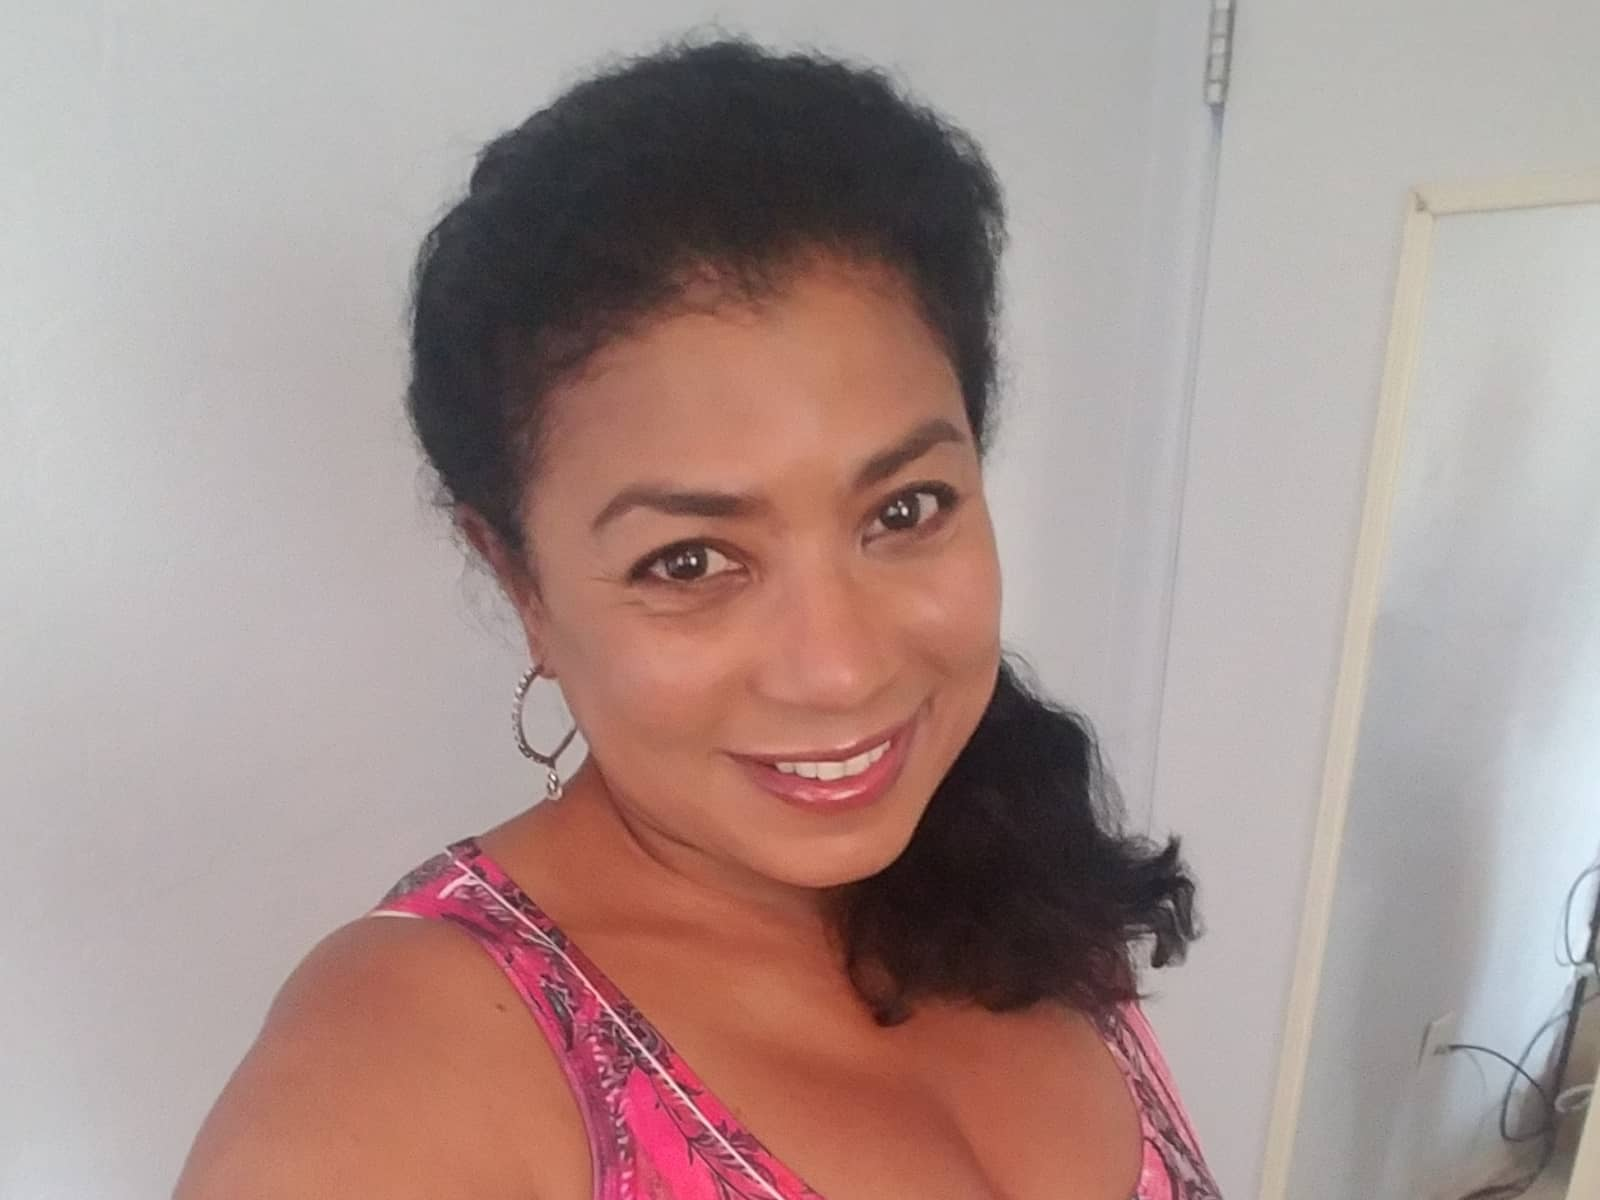 Carmen (lita) from Orlando, Florida, United States